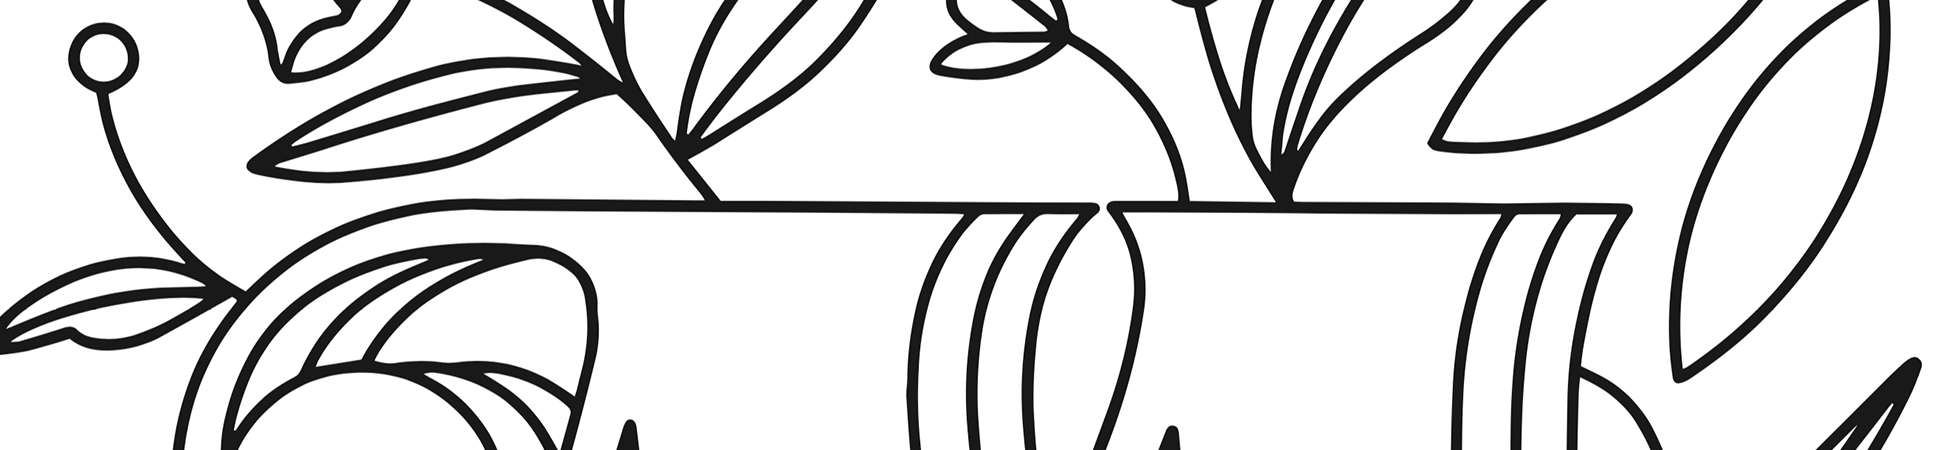 Free Children Praying Coloring Page, Download Free Clip Art, Free ... | 450x1936